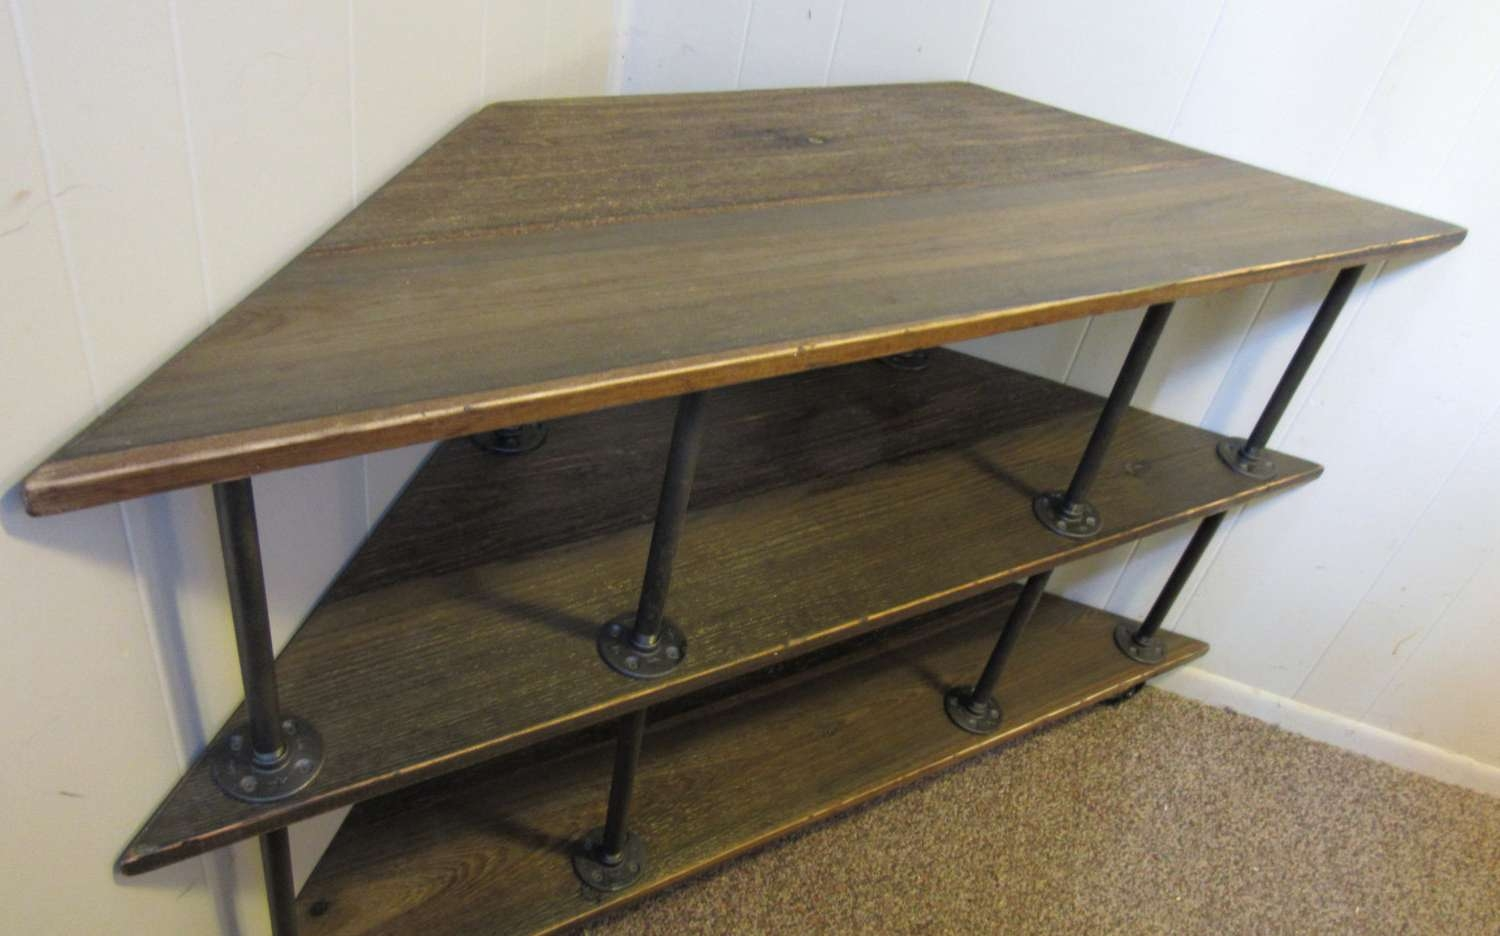 Corner Tv Stand, Industrial, Iron And Wood, For 46 To 52 Tvs Inside Industrial Corner Tv Stands (View 7 of 15)